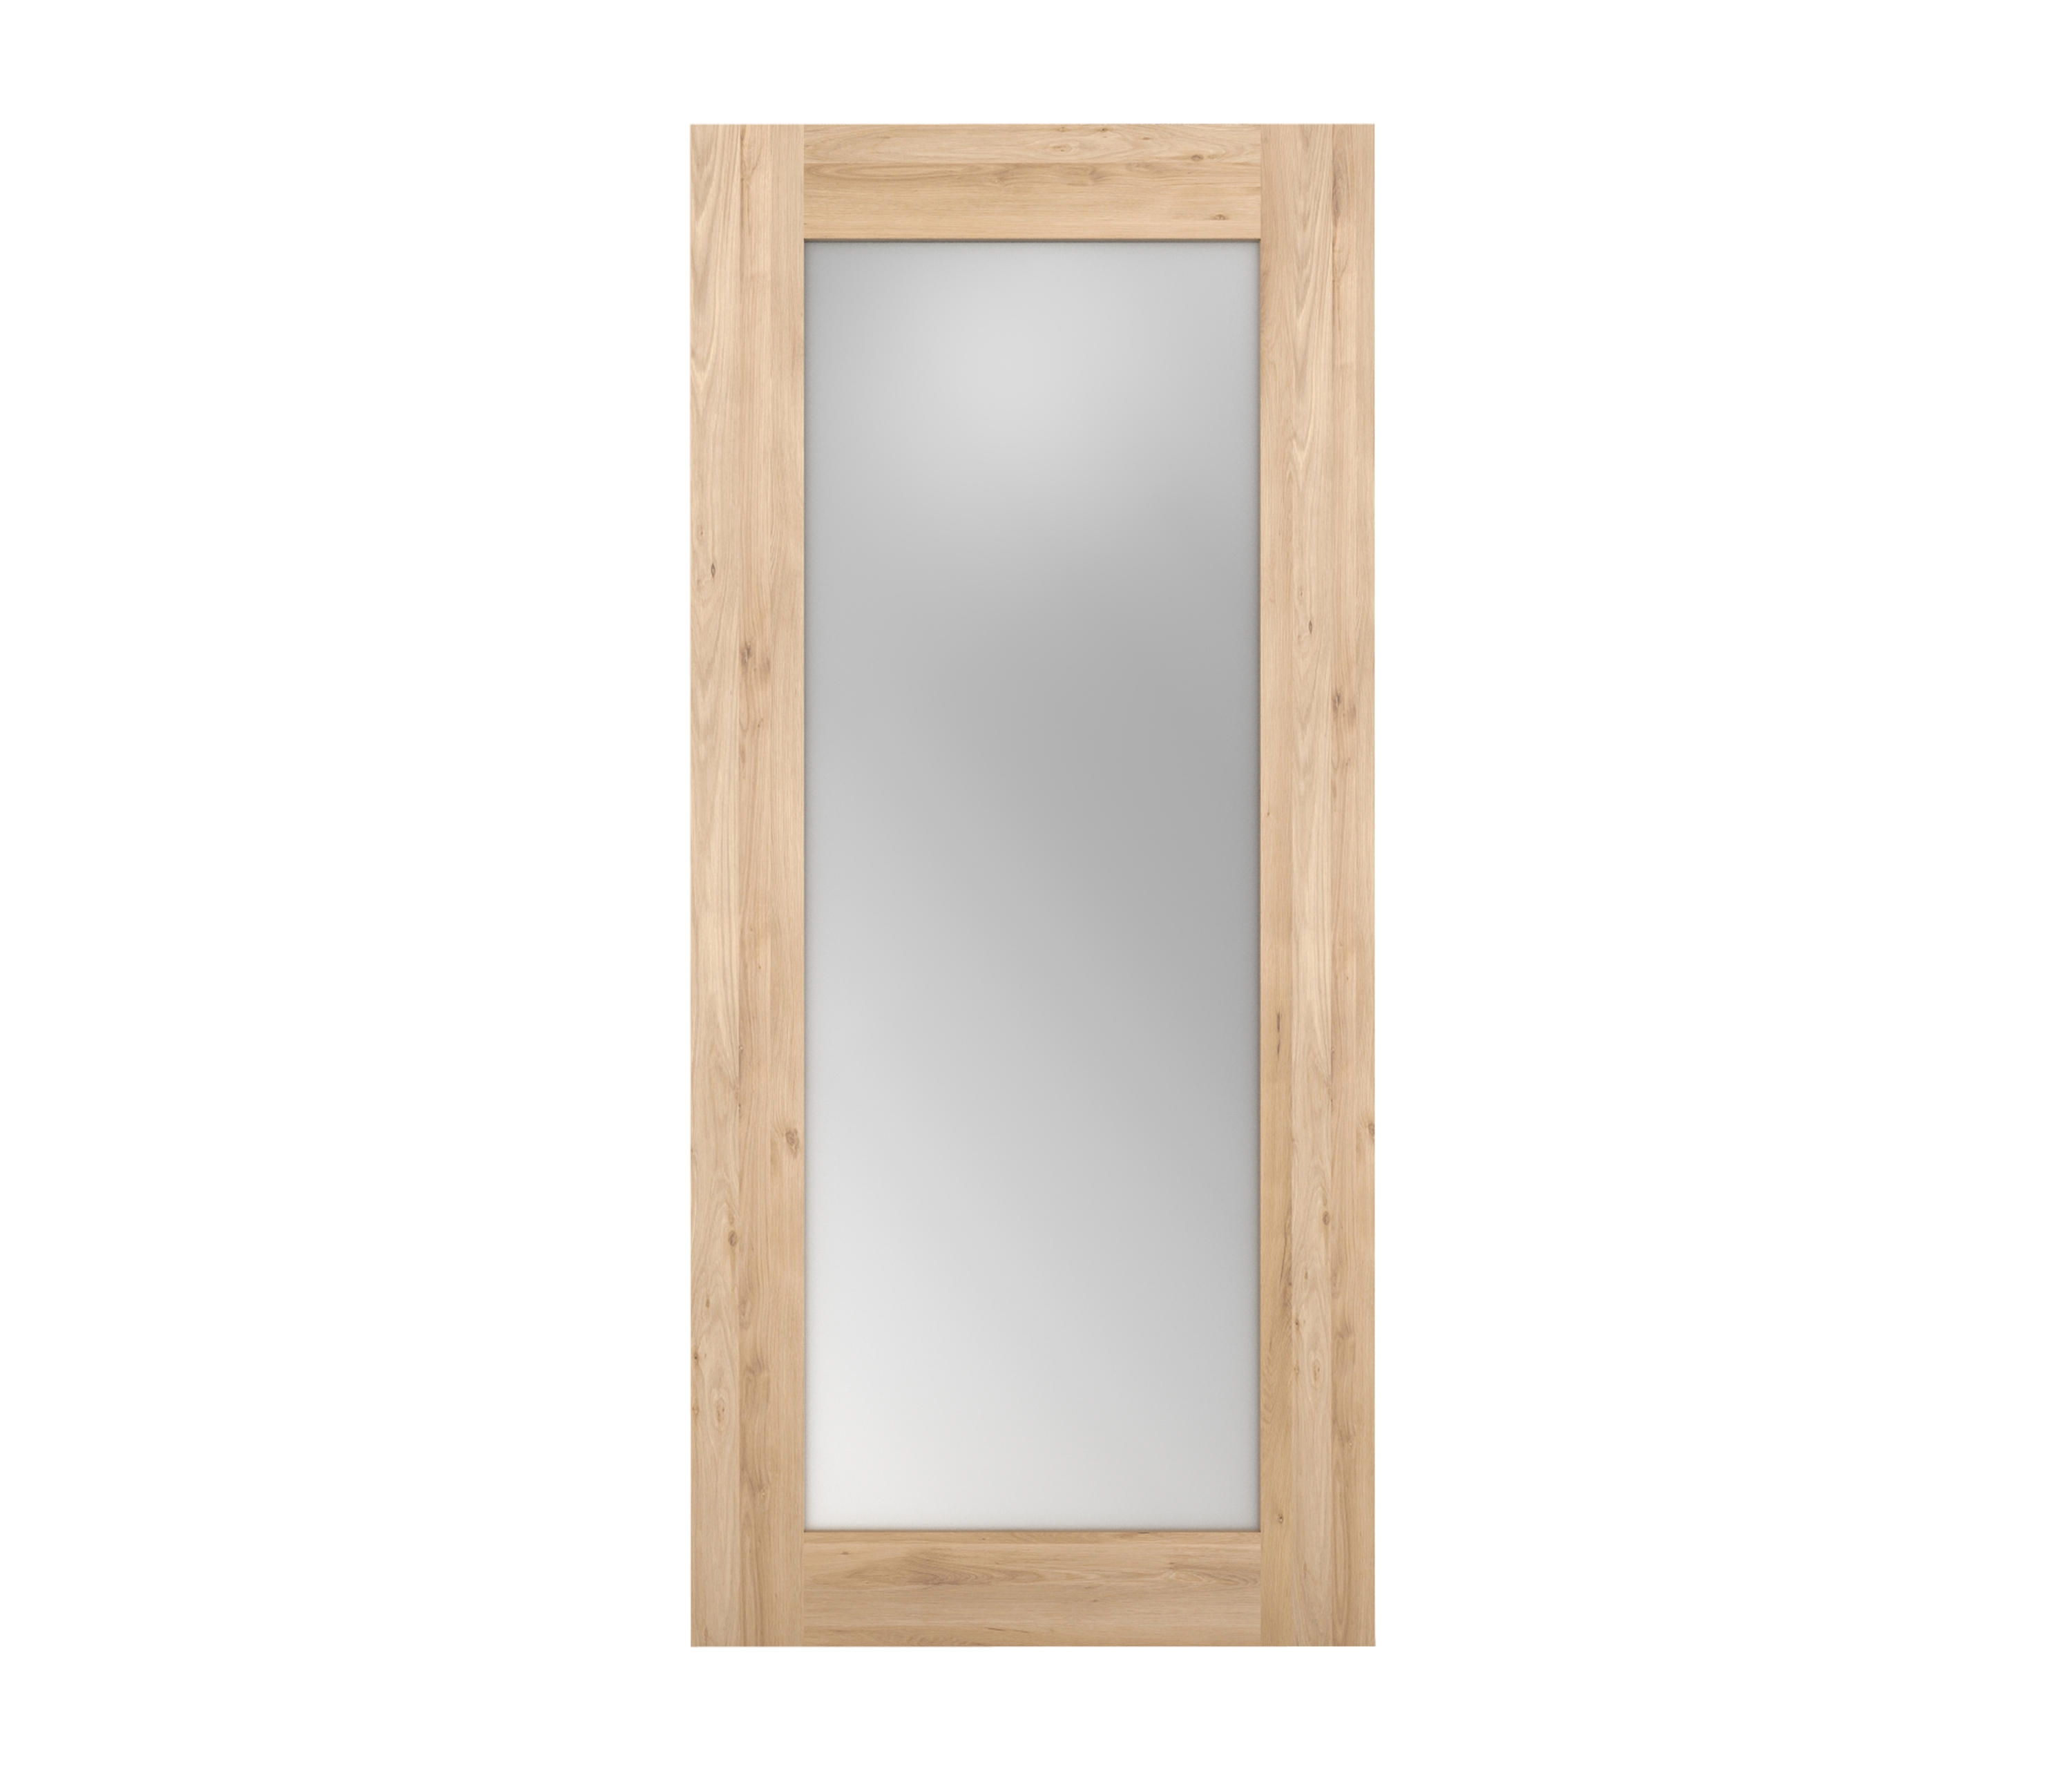 Oak Mirror Mirrors From Ethnicraft Architonic In Oak Mirrors (Image 10 of 15)